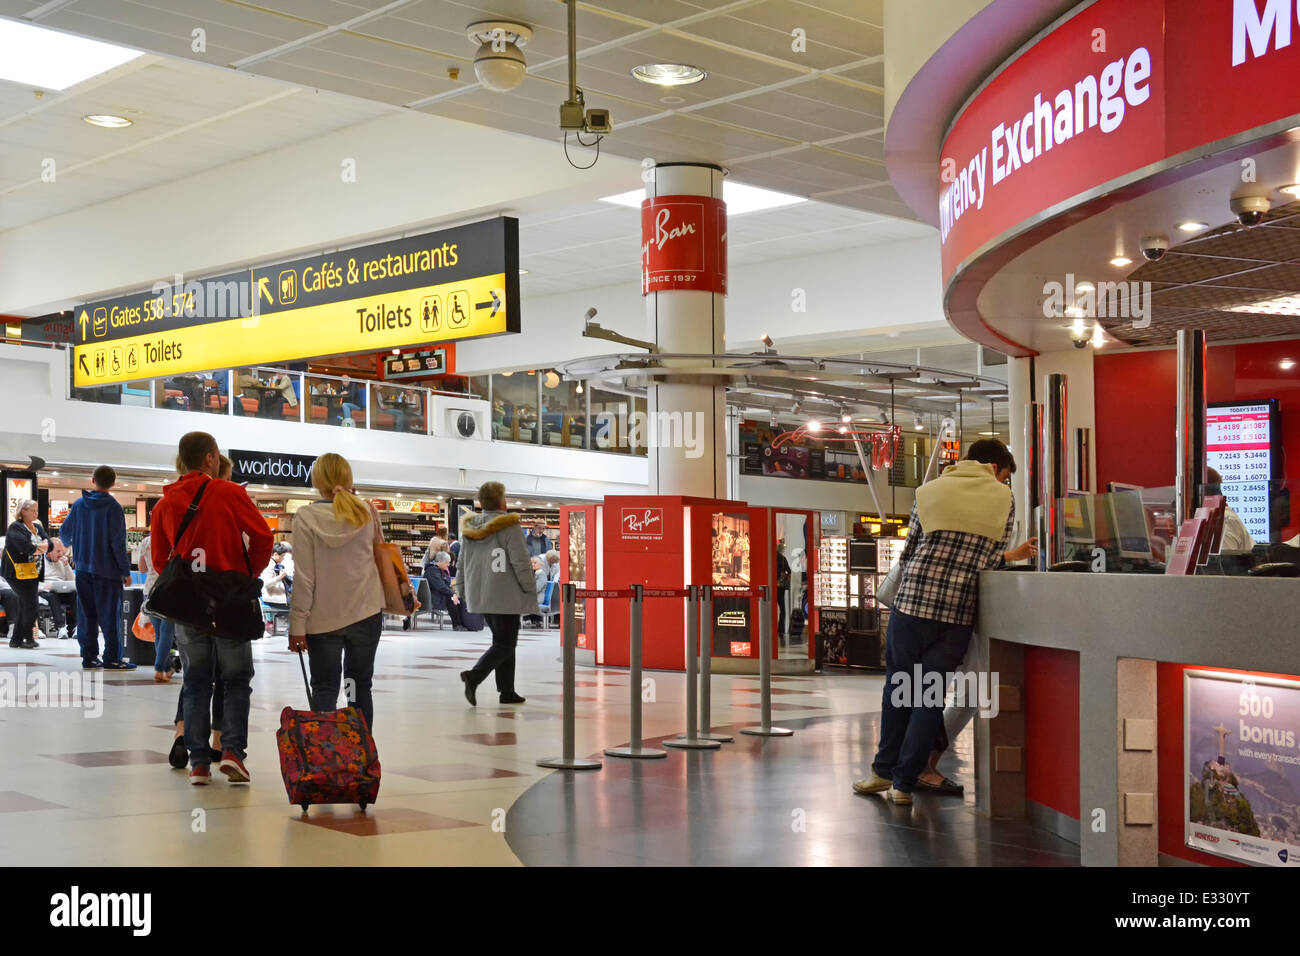 Foreign currency exchange stock photos foreign currency exchange stock images alamy - Gatwick airport bureau de change ...